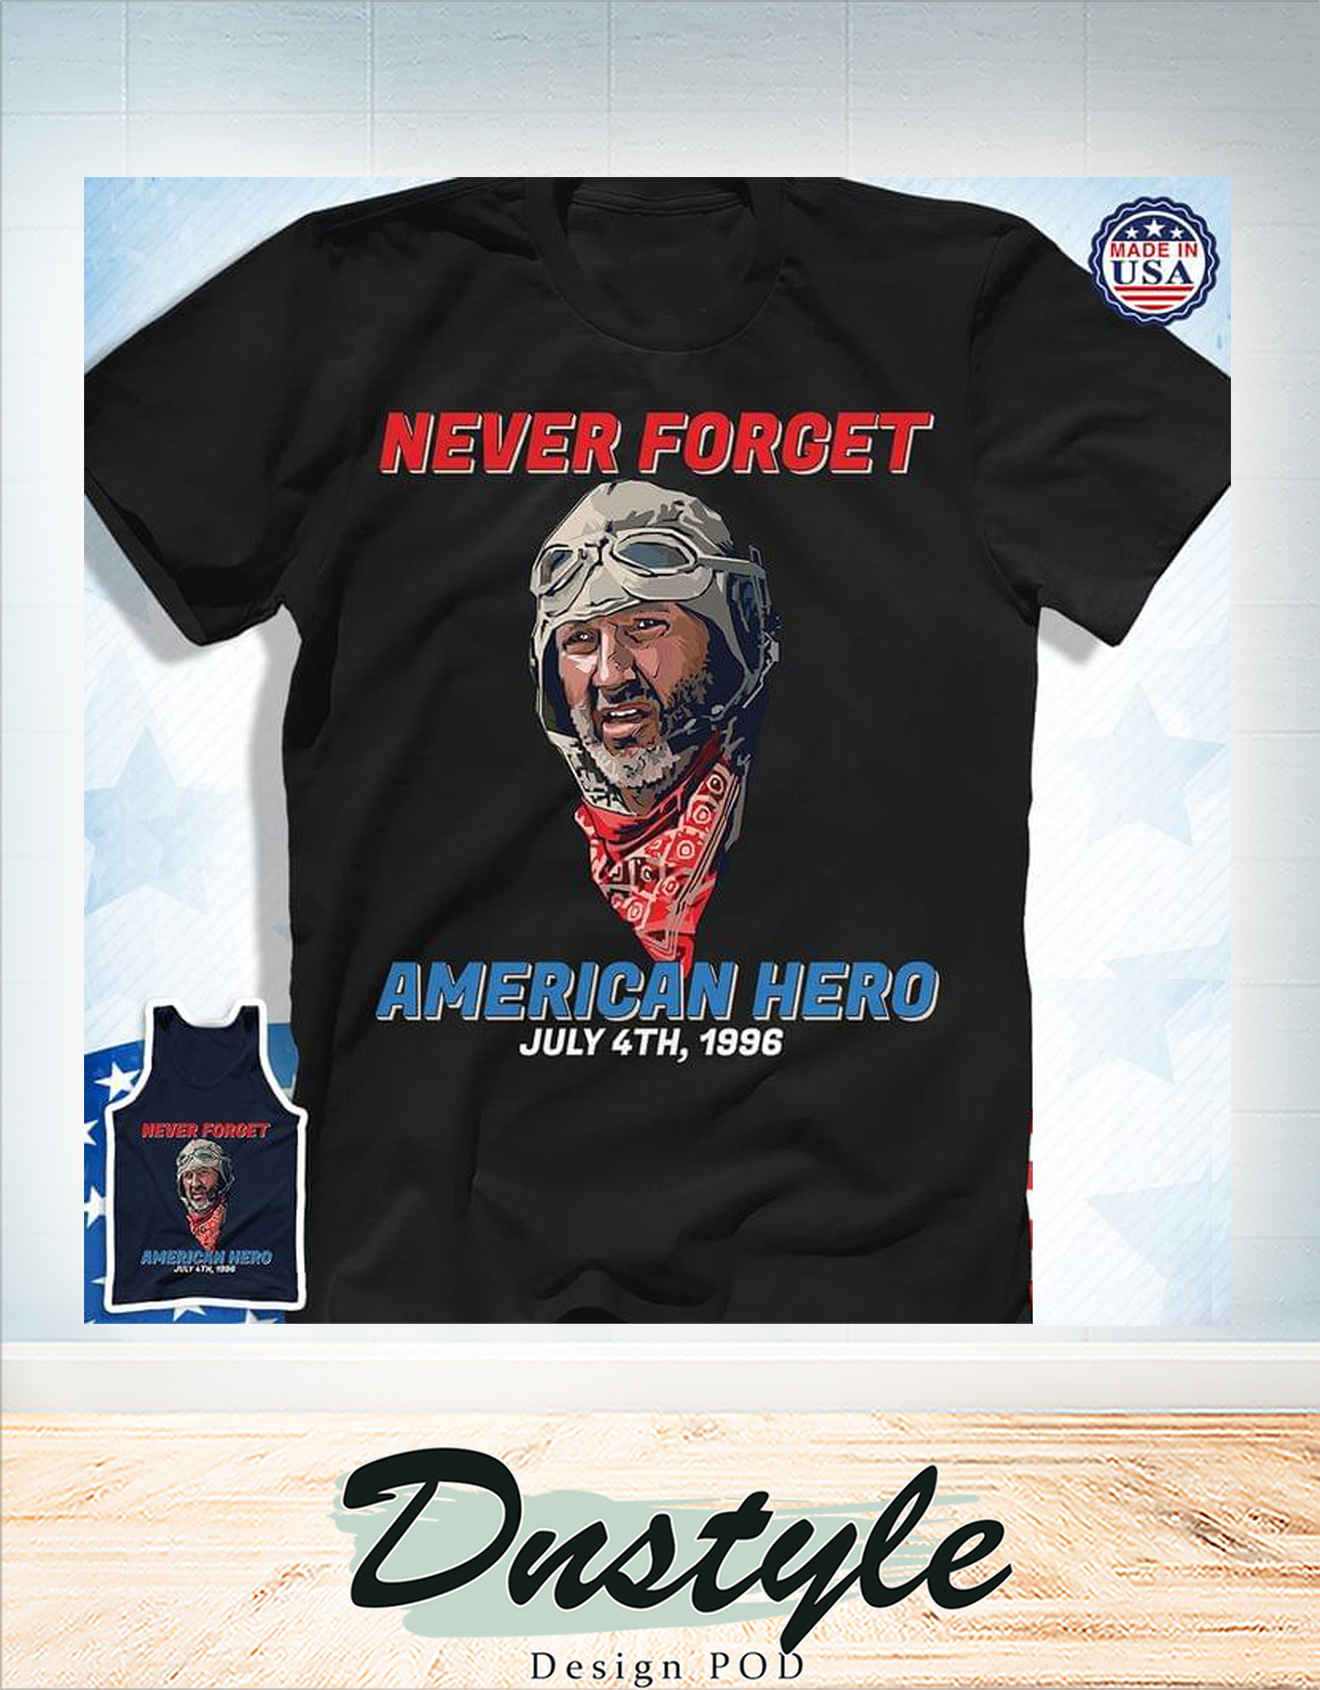 Never forget american hero july 4th 1986 t-shirt 1